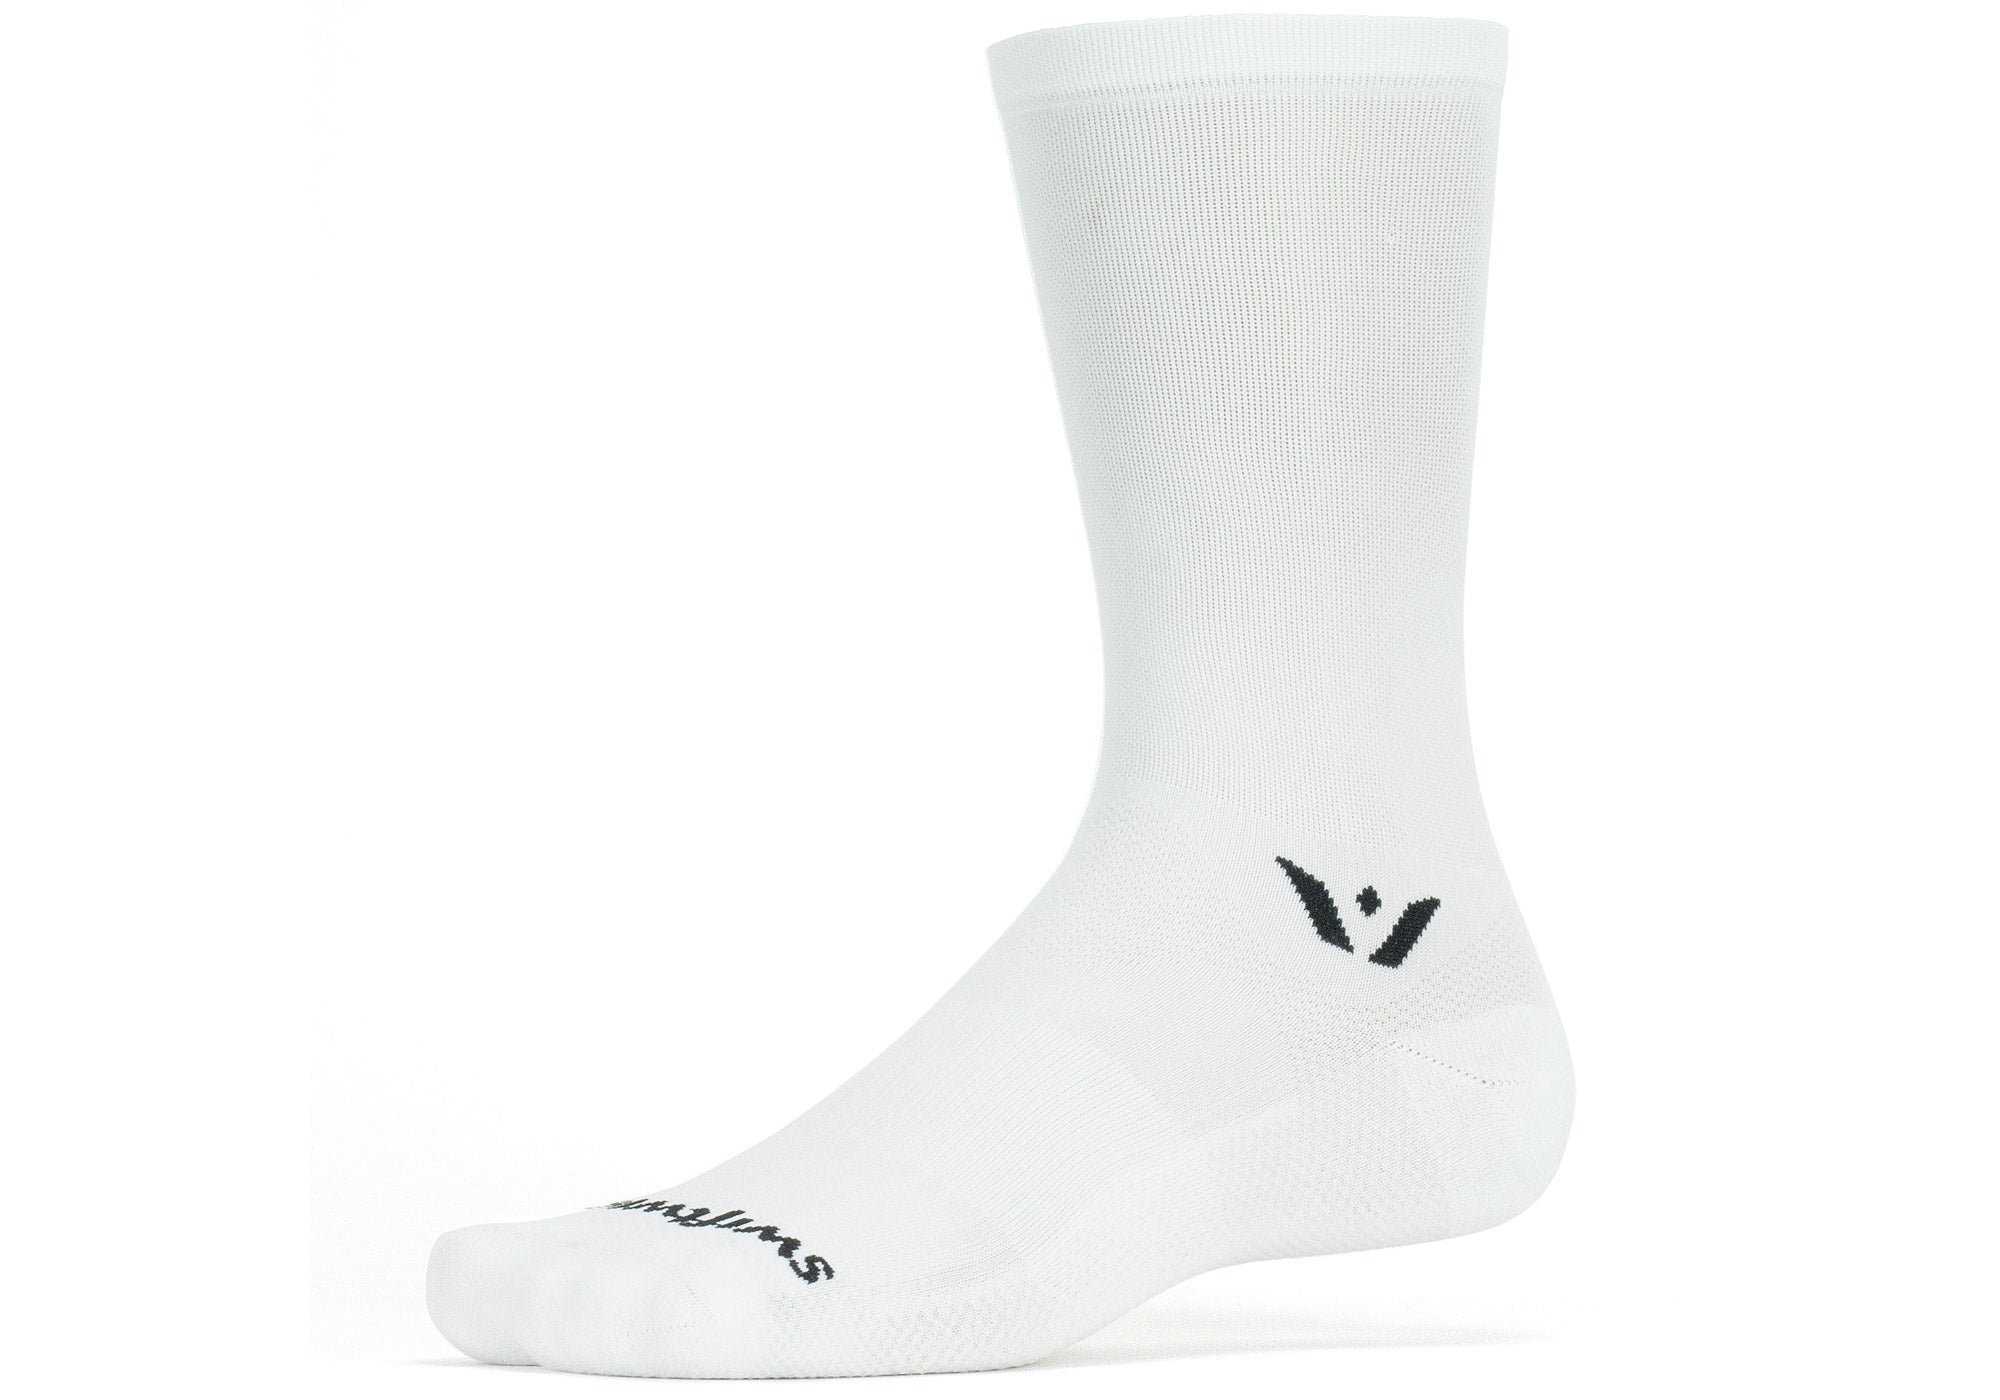 "Swiftwick Aspire Cycling Socks 7"" Cuff, White"